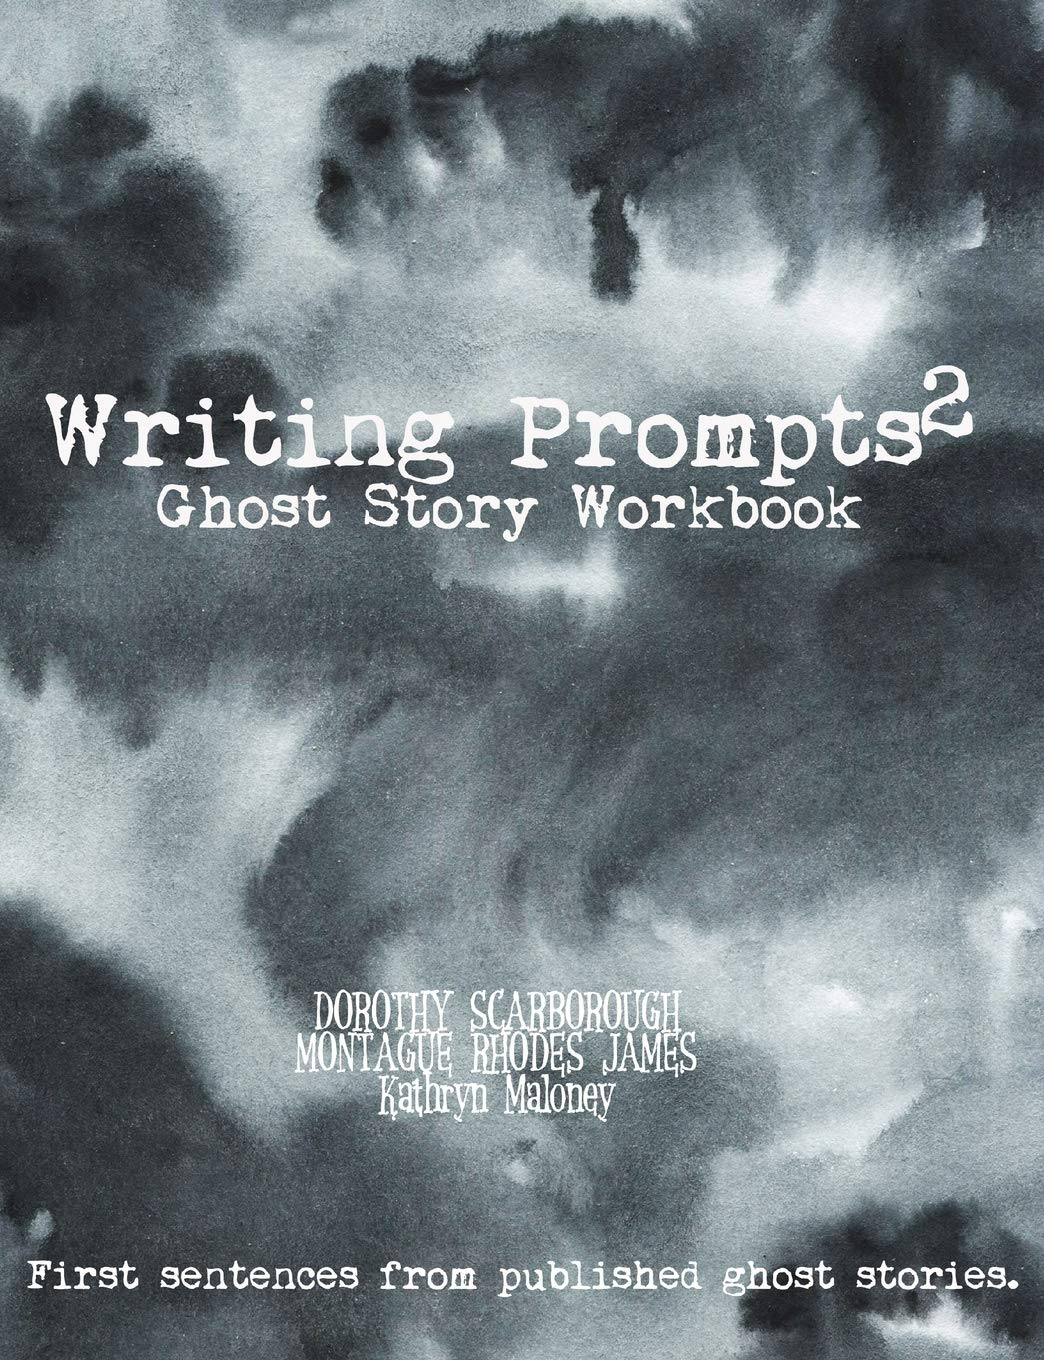 Writing Prompts Ghost Story Workbook: Your ghost book